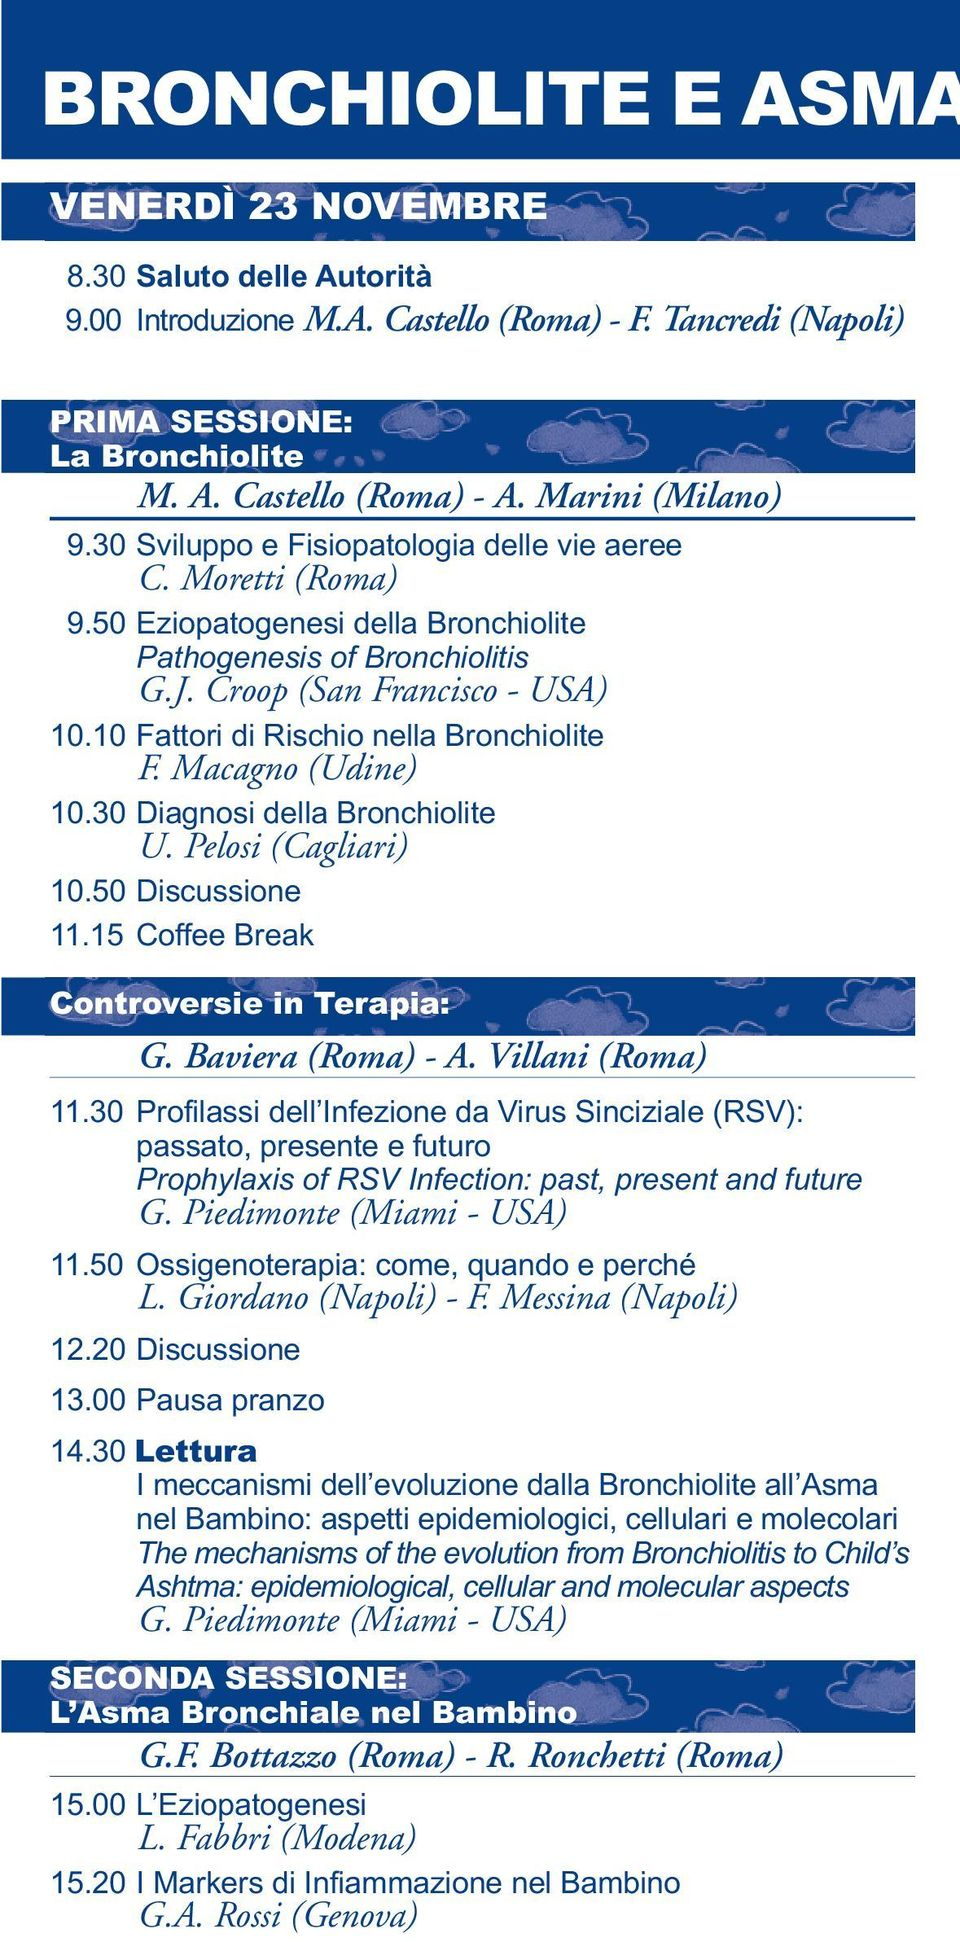 10 Fattori di Rischio nella Bronchiolite F. Macagno (Udine) 10.30 Diagnosi della Bronchiolite U. Pelosi (Cagliari) 10.50 Discussione 11.15 Coffee Break Controversie in Terapia: G. Baviera (Roma) - A.